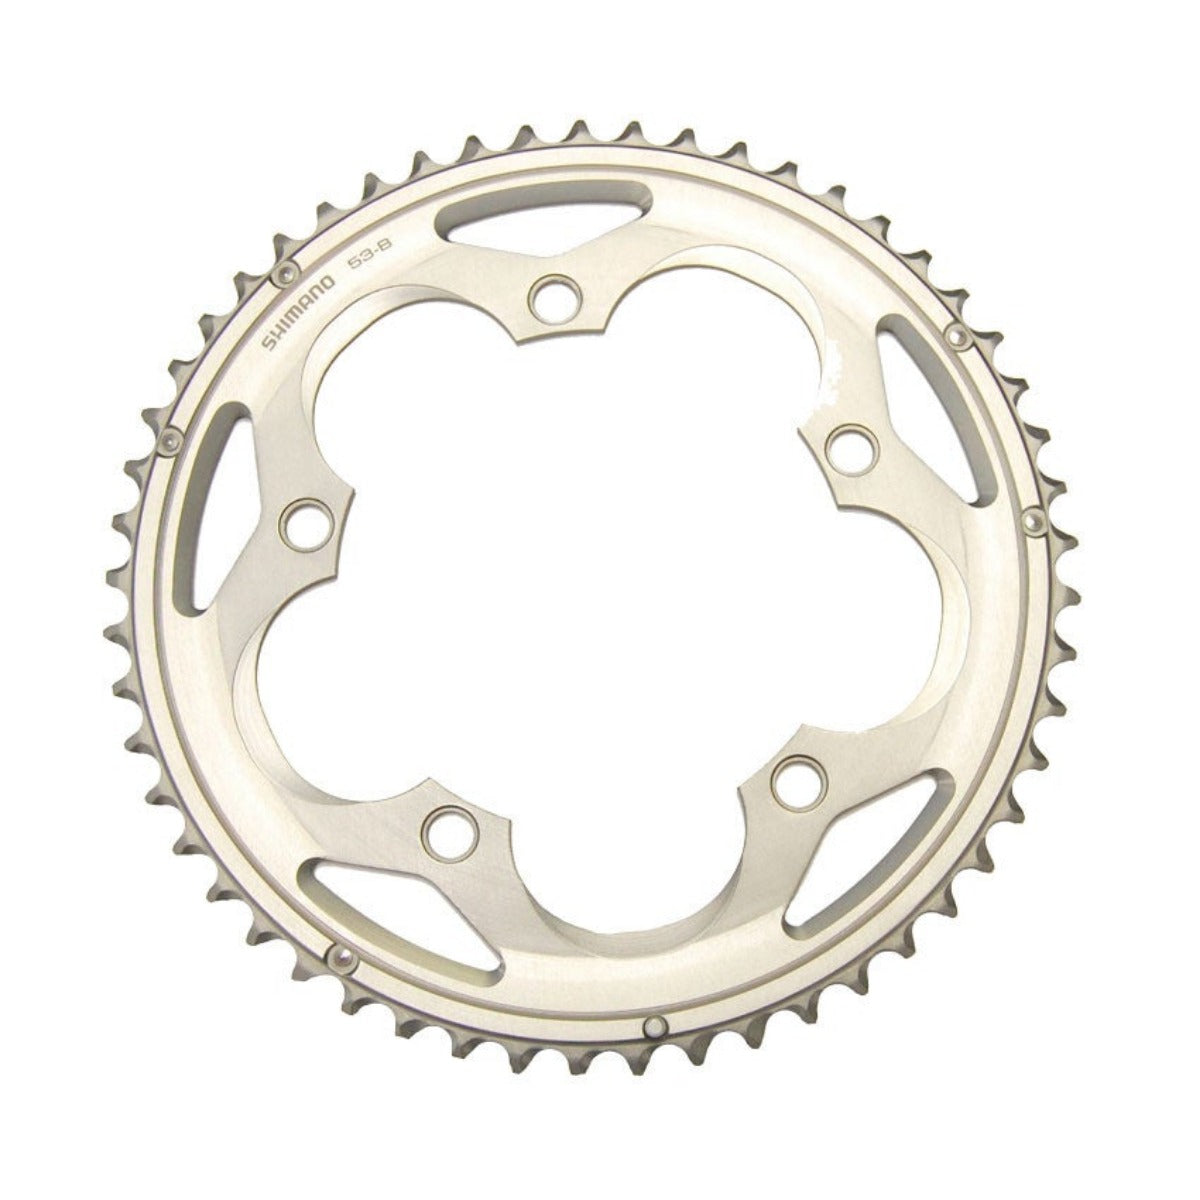 NEW Shimano 105 5700 53t 130mm 10-Speed Chainring Black